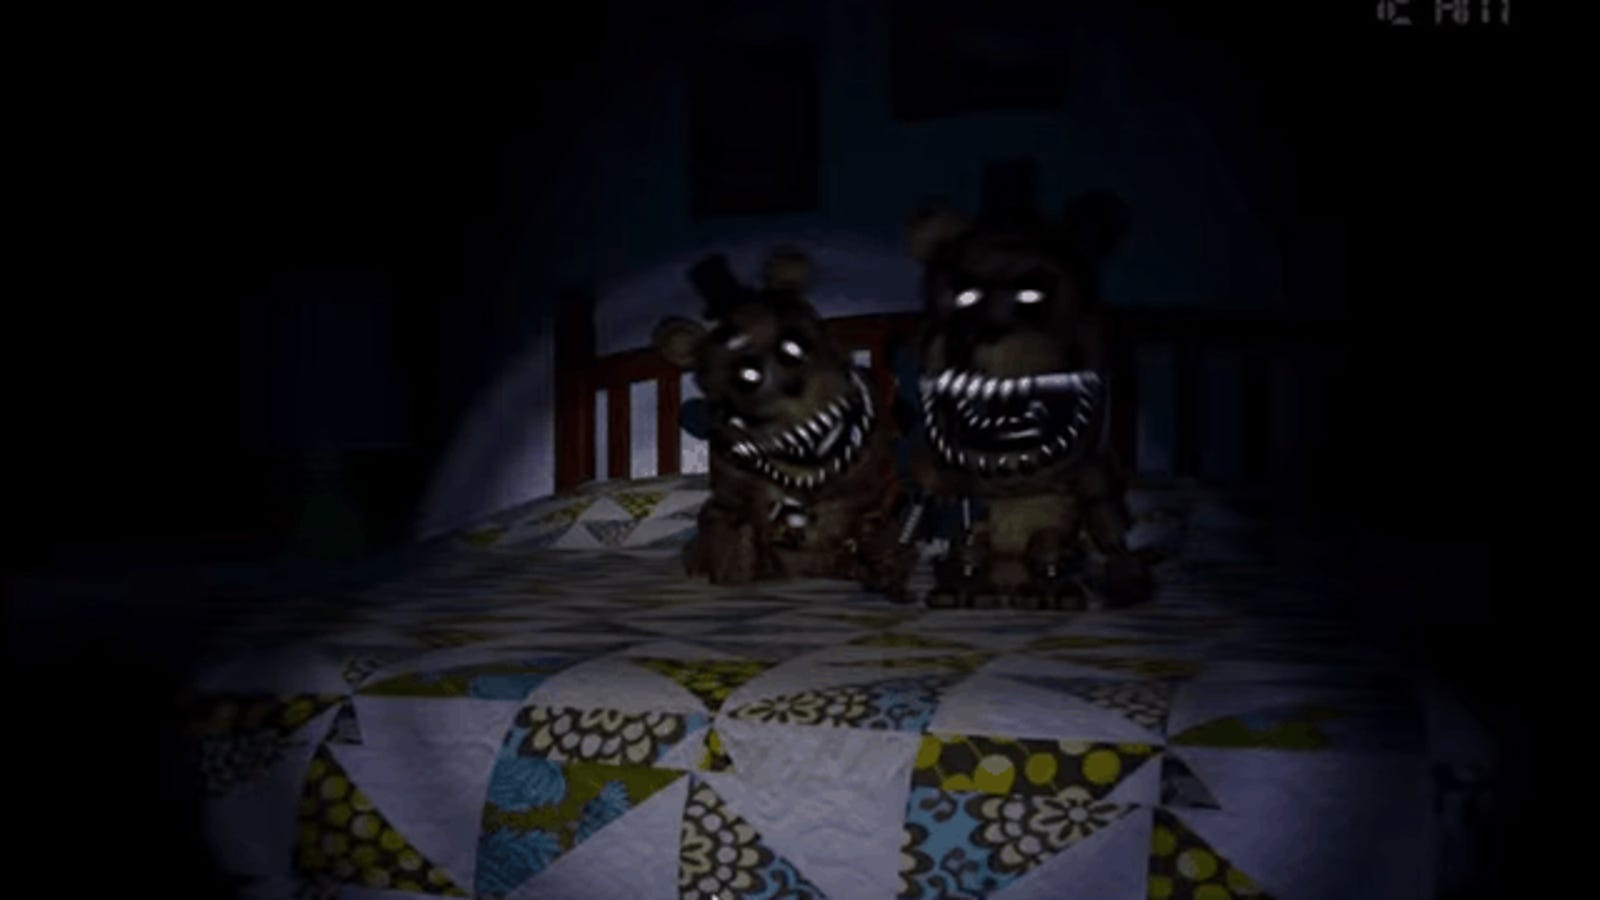 five nights at freddys 4 chest